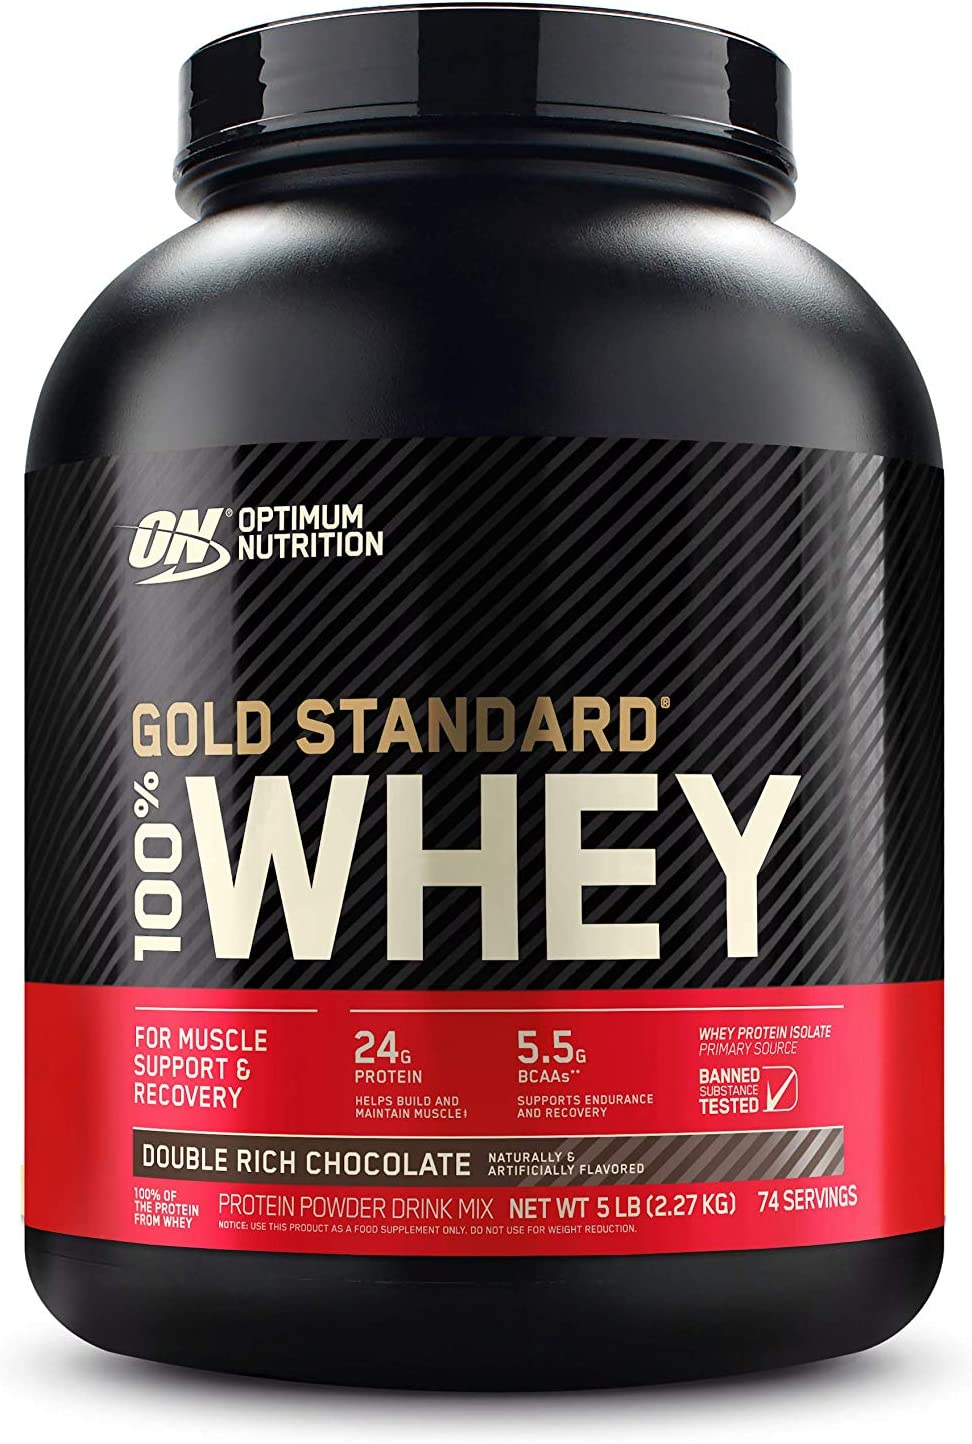 Amazon.com: Optimum Nutrition Gold Standard 100% Whey Protein Powder,  Double Rich Chocolate, 5 Pound (Packaging May Vary): Health & Personal Care